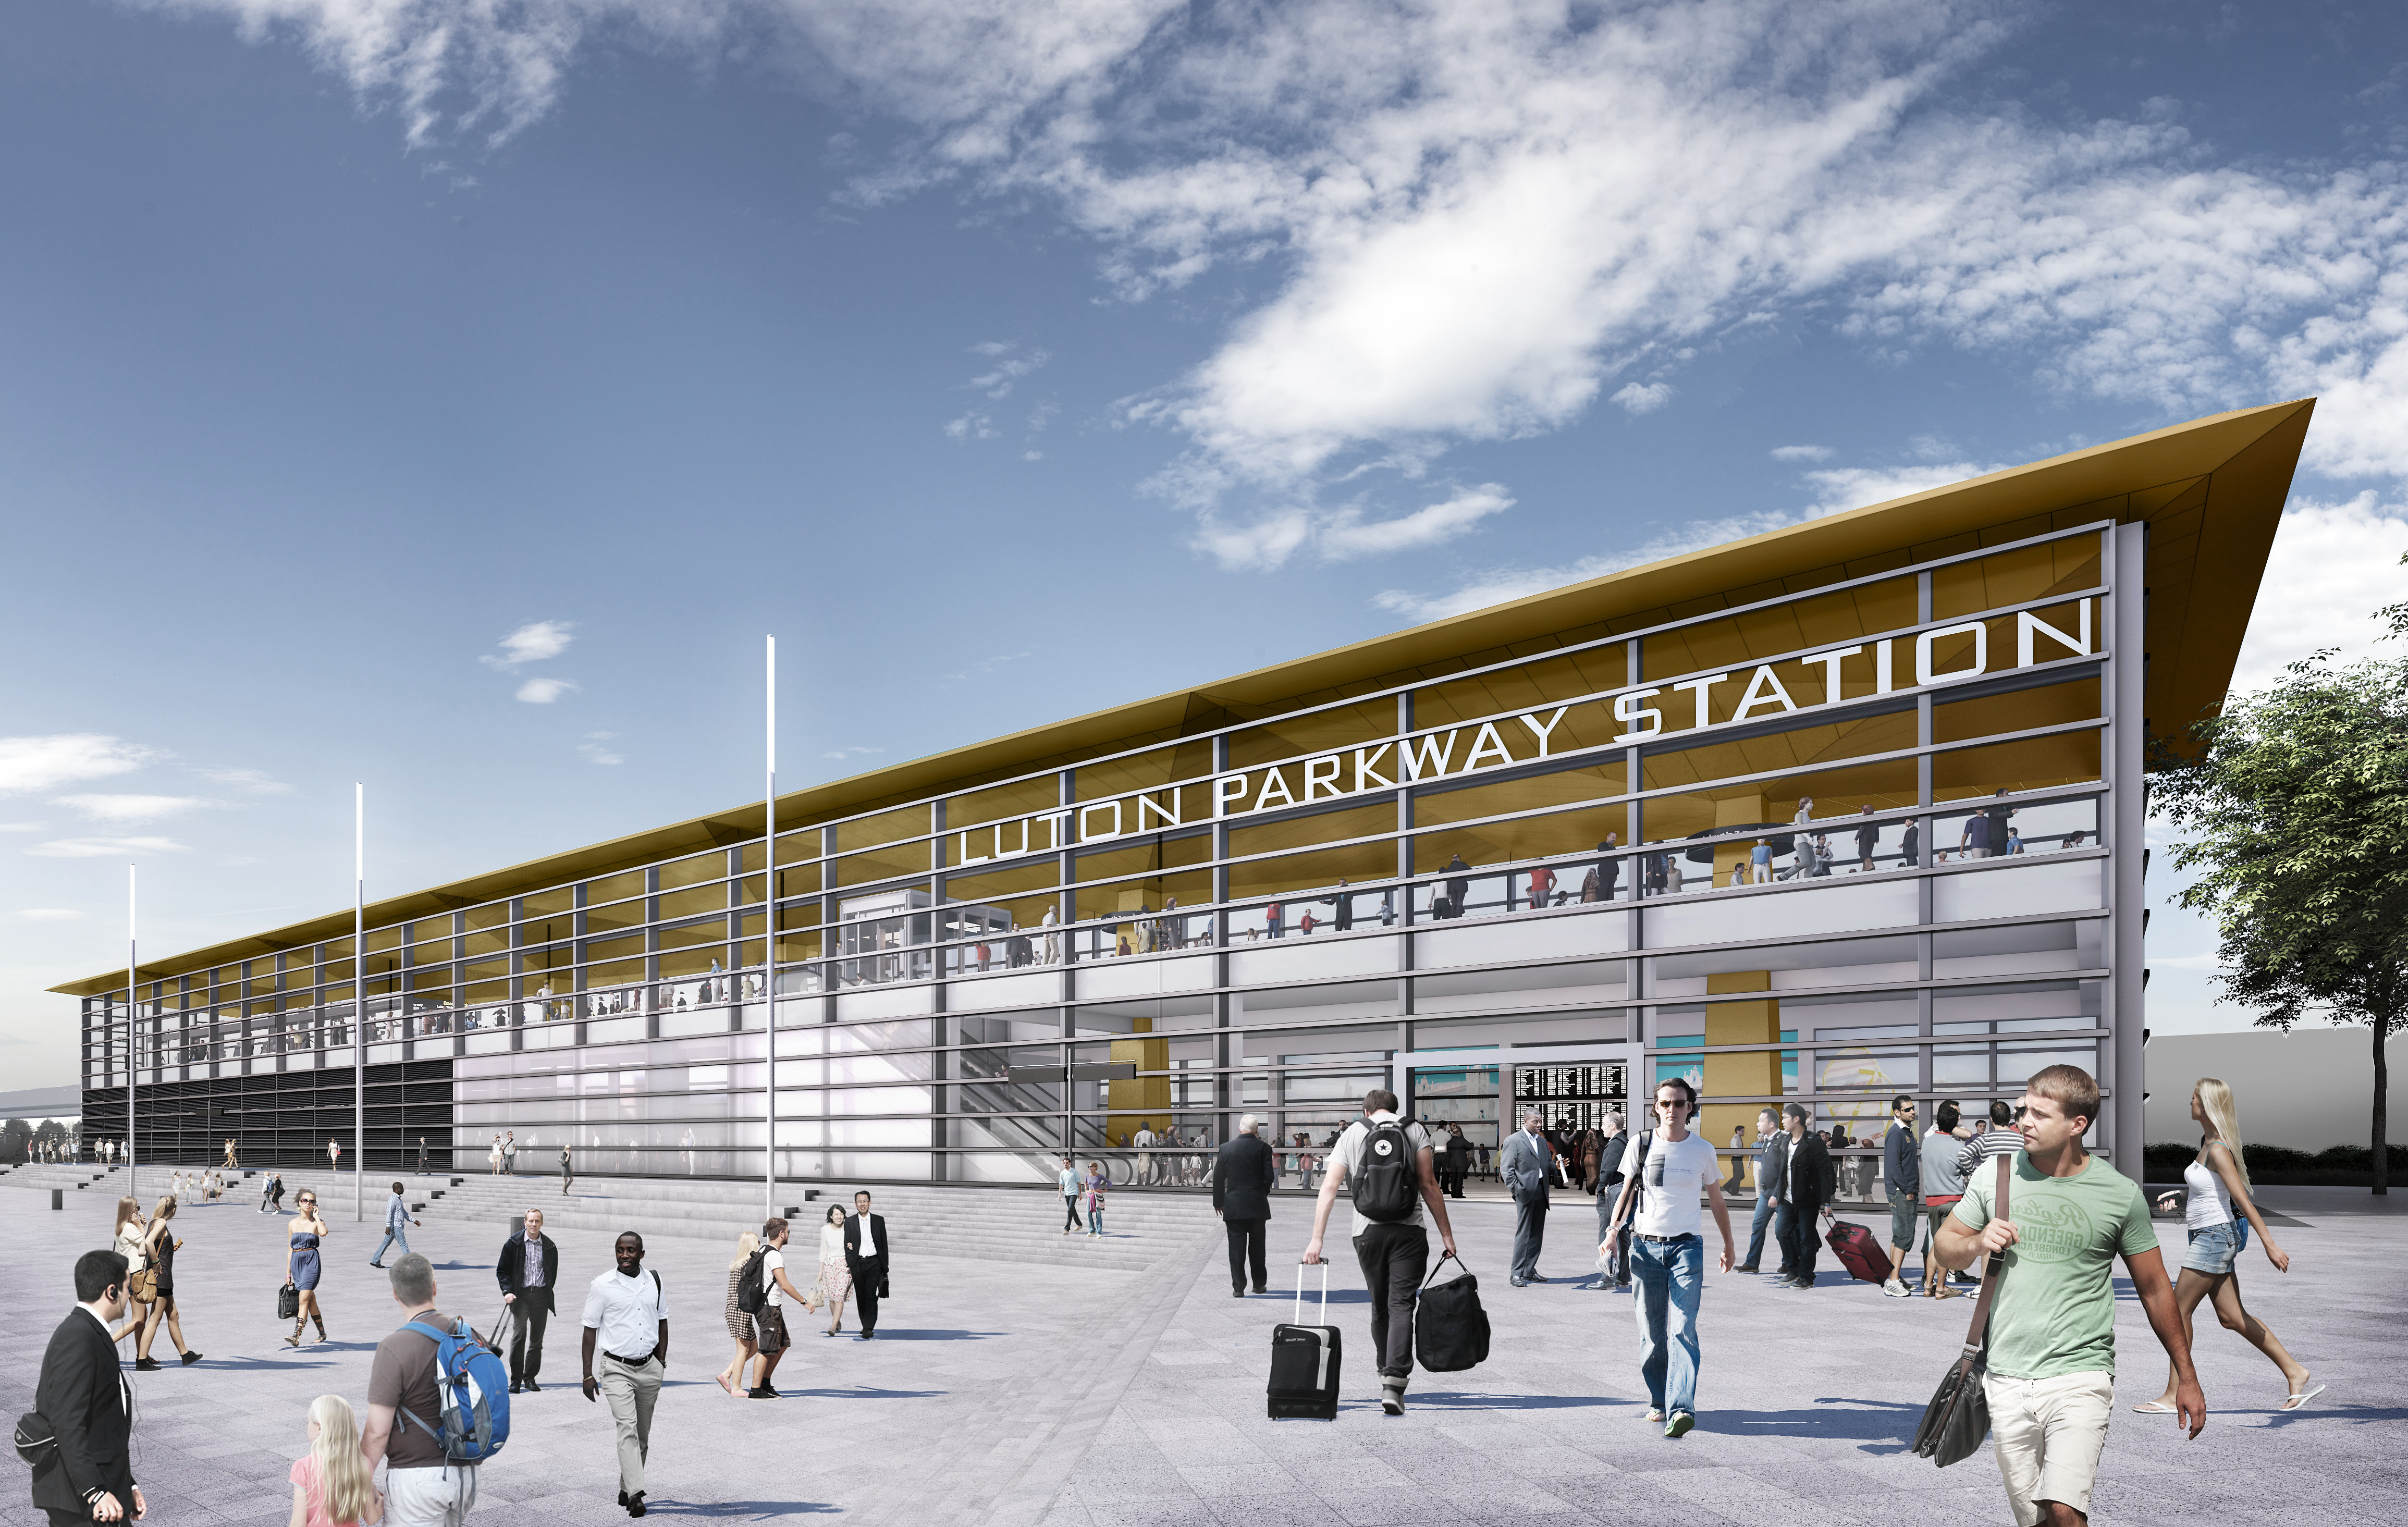 Luton Airport Parkway Station - Revamp